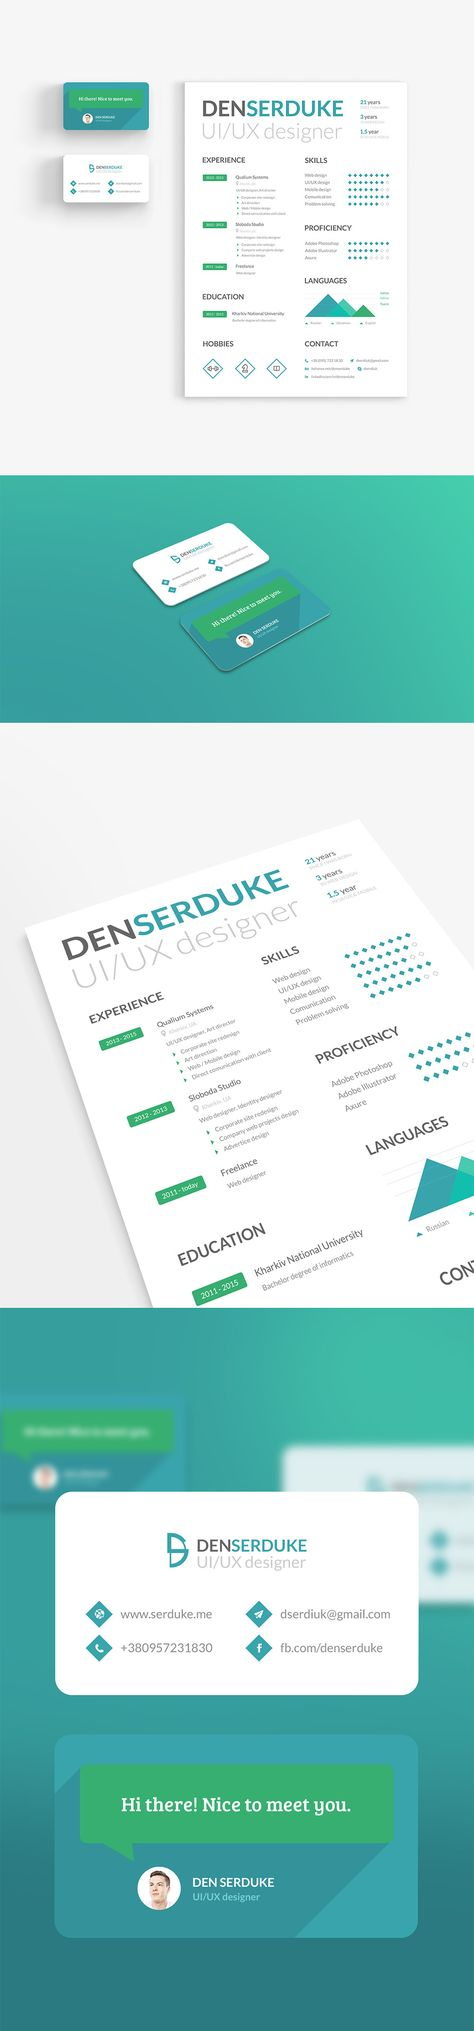 Cv Examples Teenager     BQQU A Customer assistant CV example in a modern design